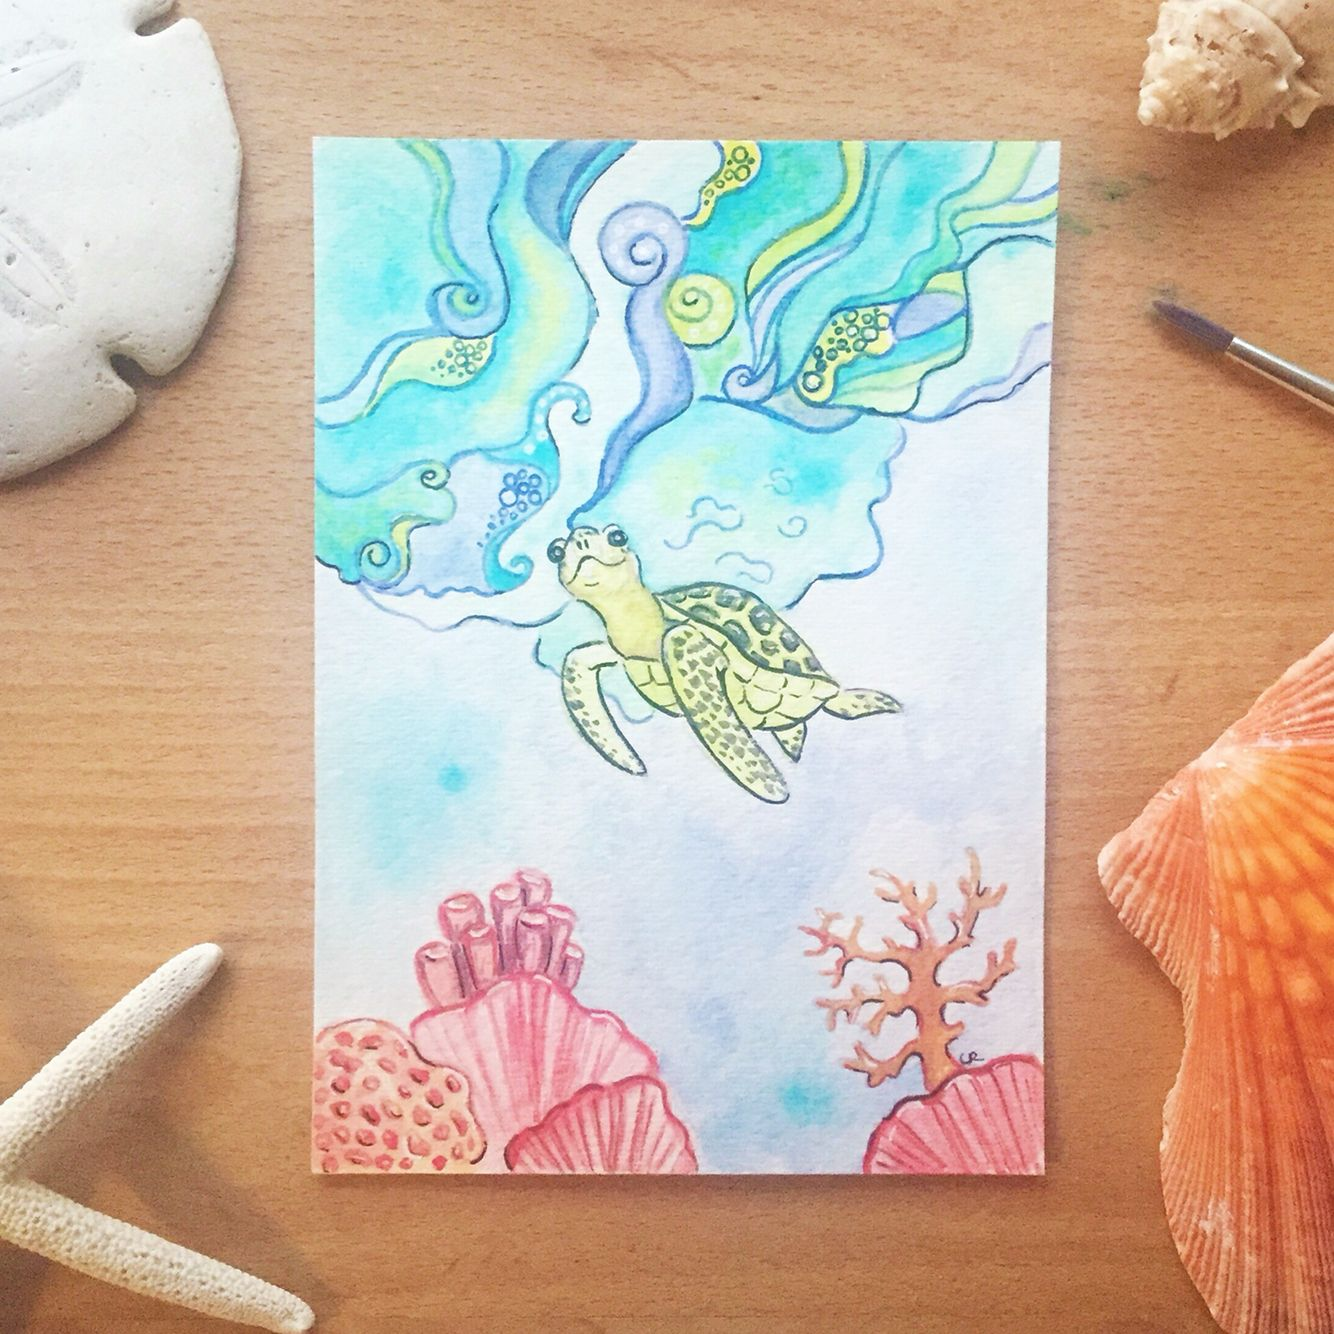 085e9dbc5d45 Watercolor Coral Reef Tattoo at GetDrawings.com | Free for personal ...